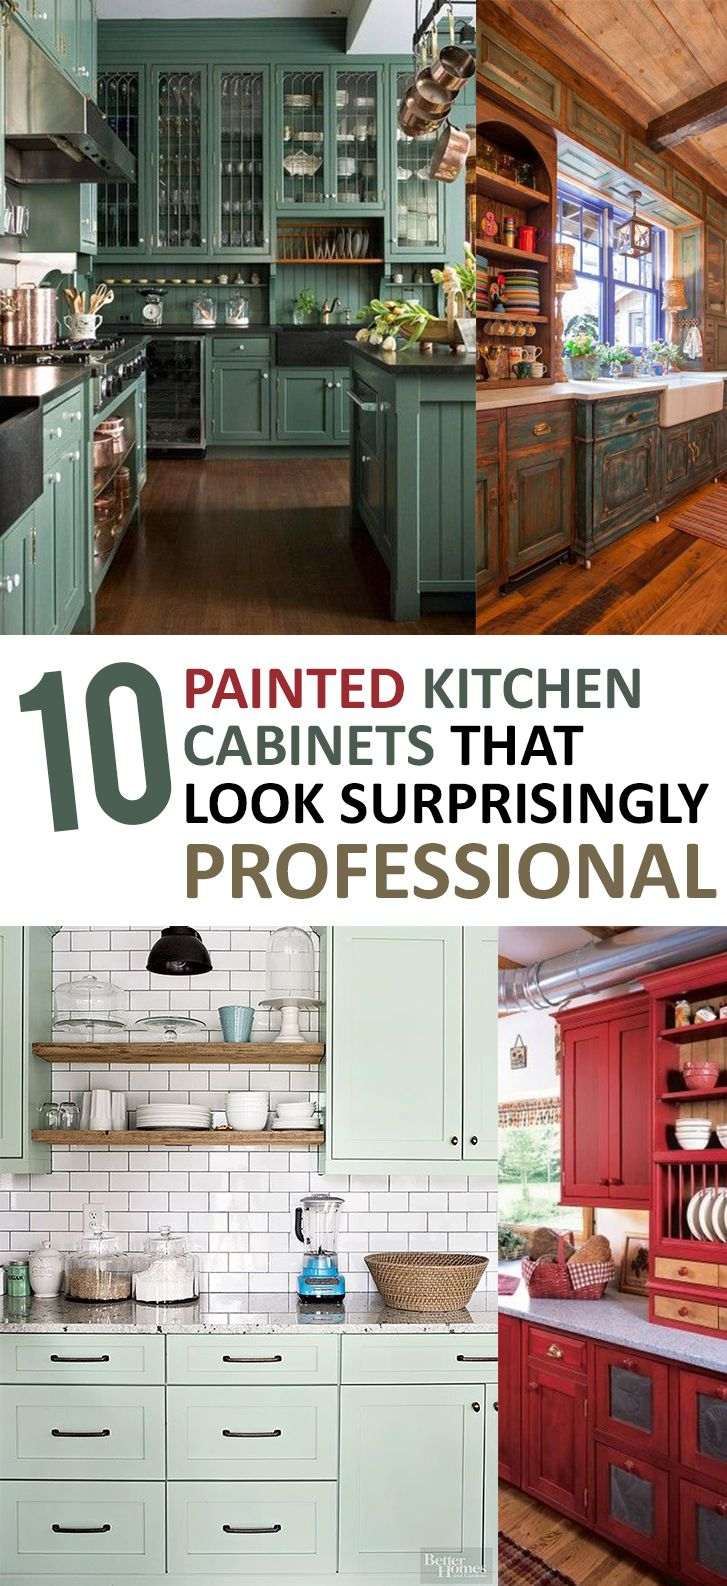 Get tips and tricks to give your kitchen cabinet a paint update!